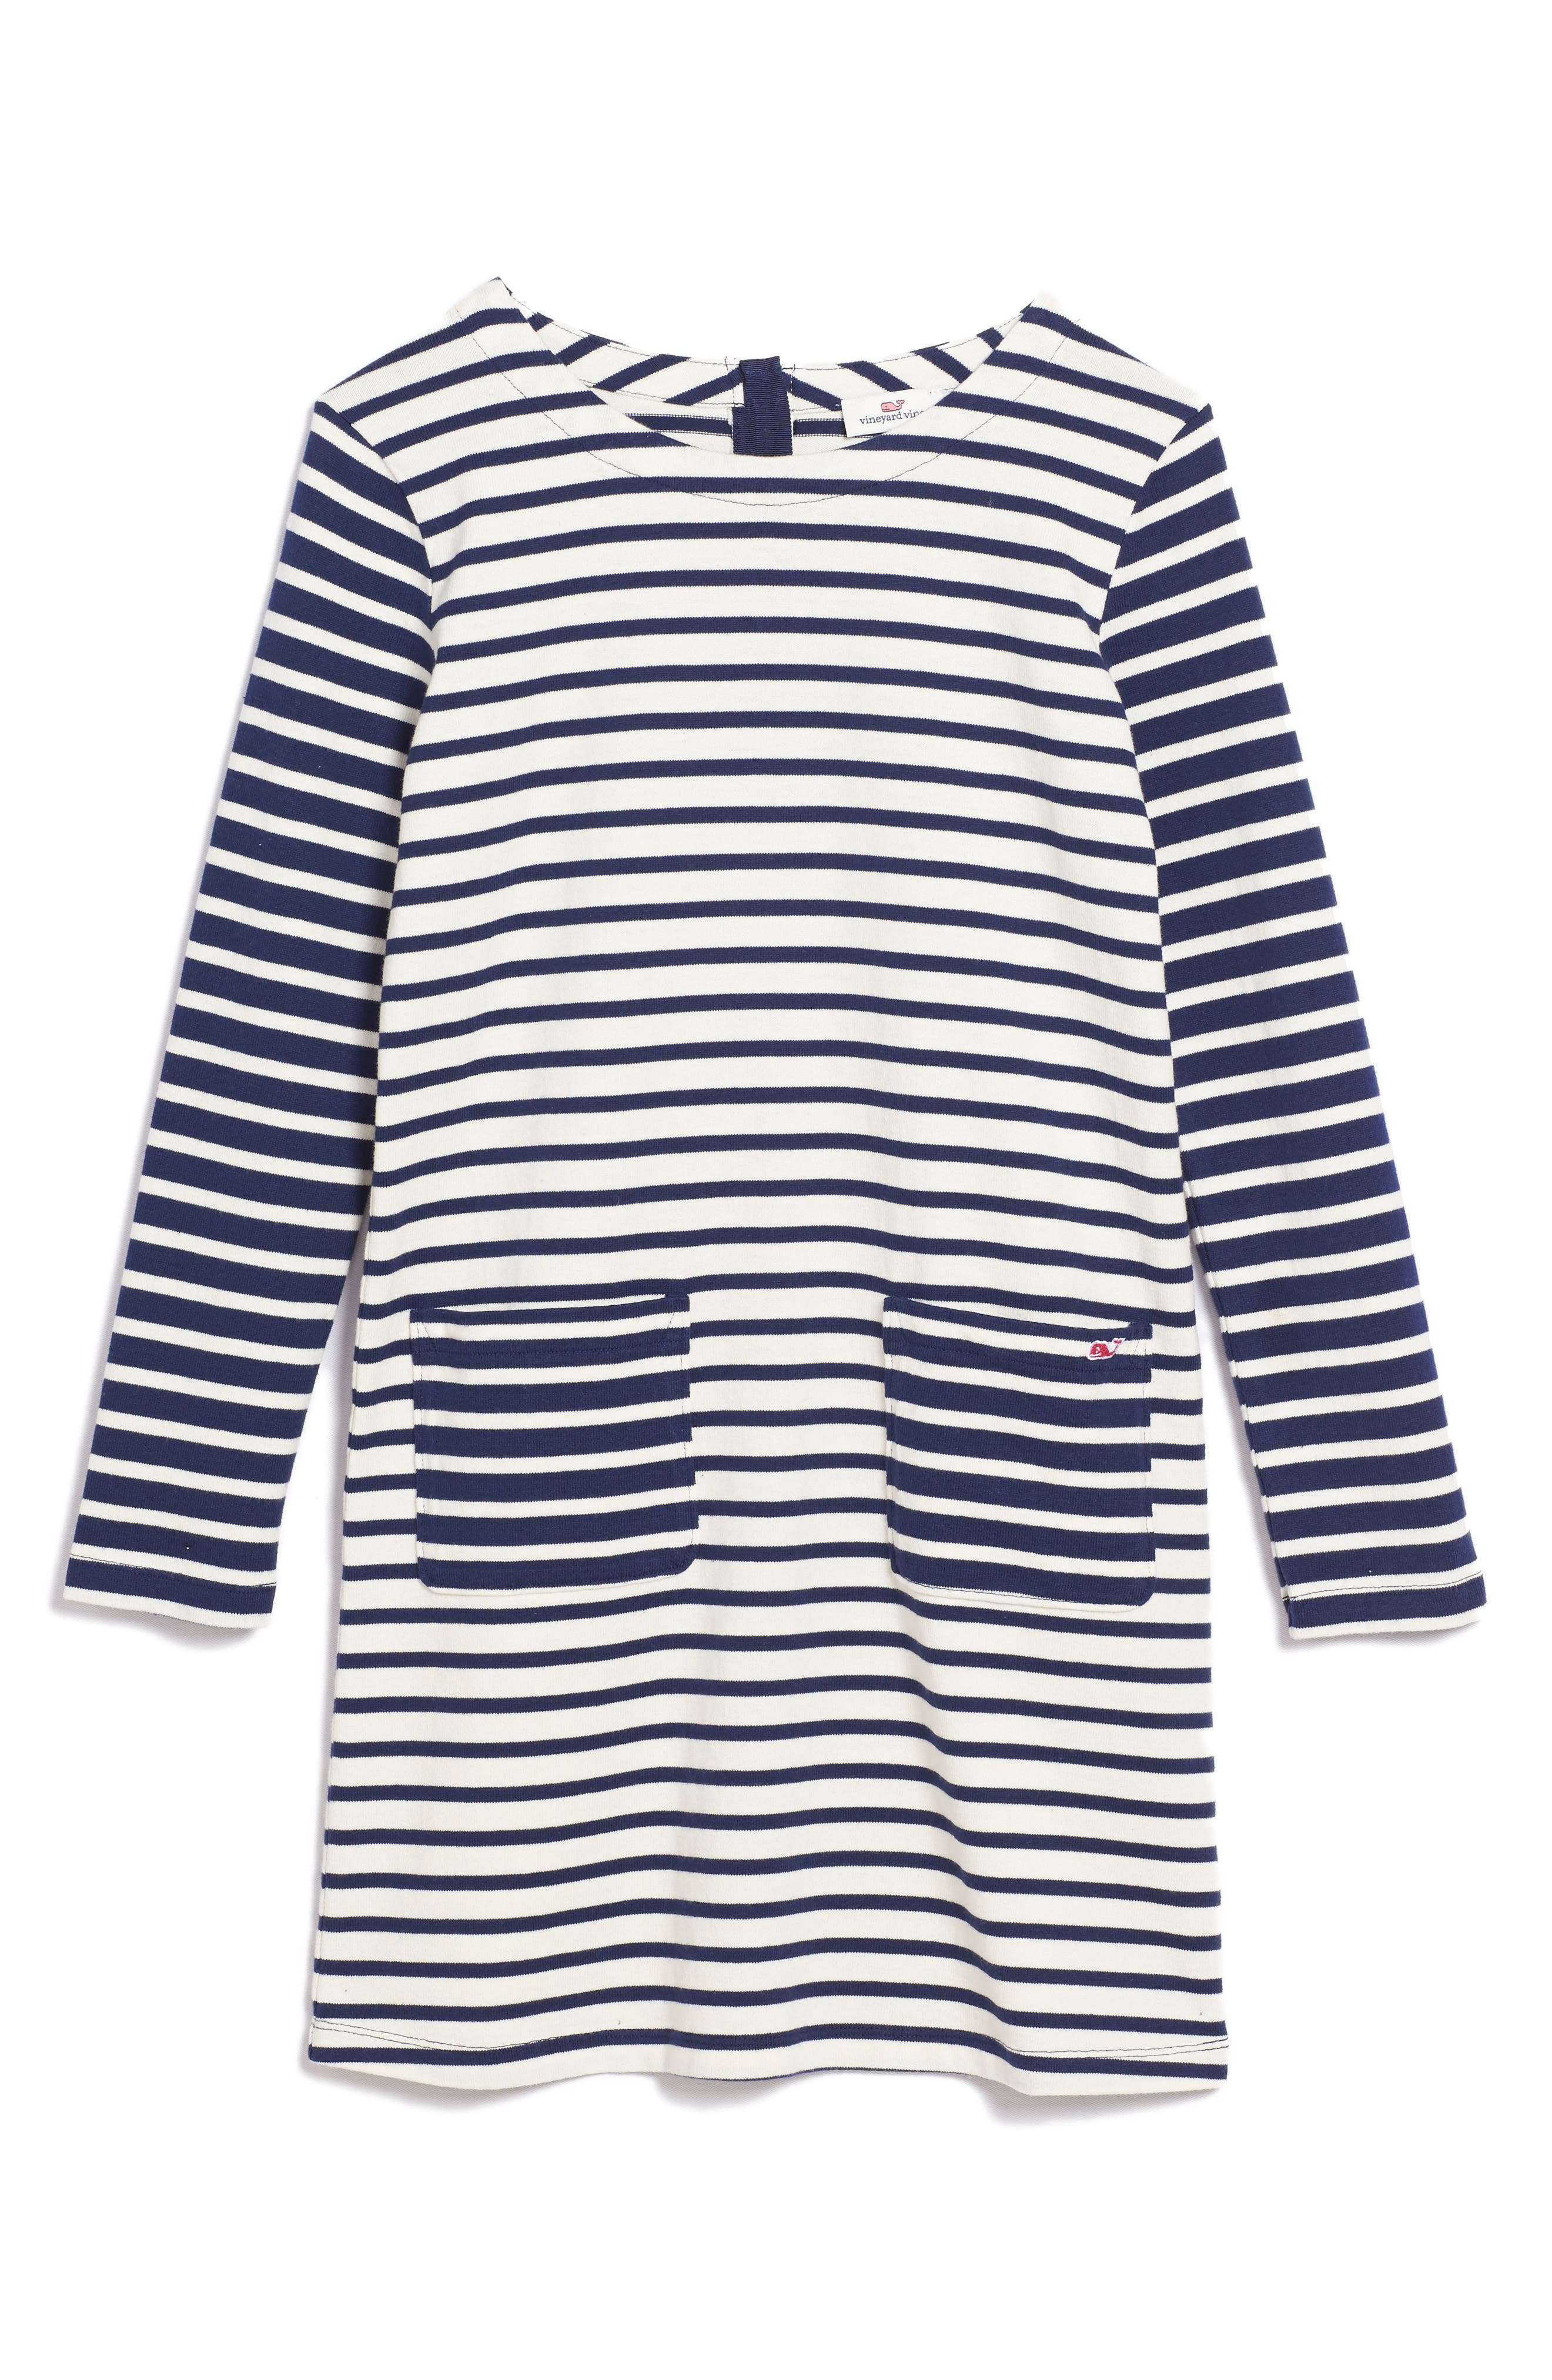 Alternate Image 1 Selected - vineyard vines Stripe Knit Dress (Little Girls & Big Girls)